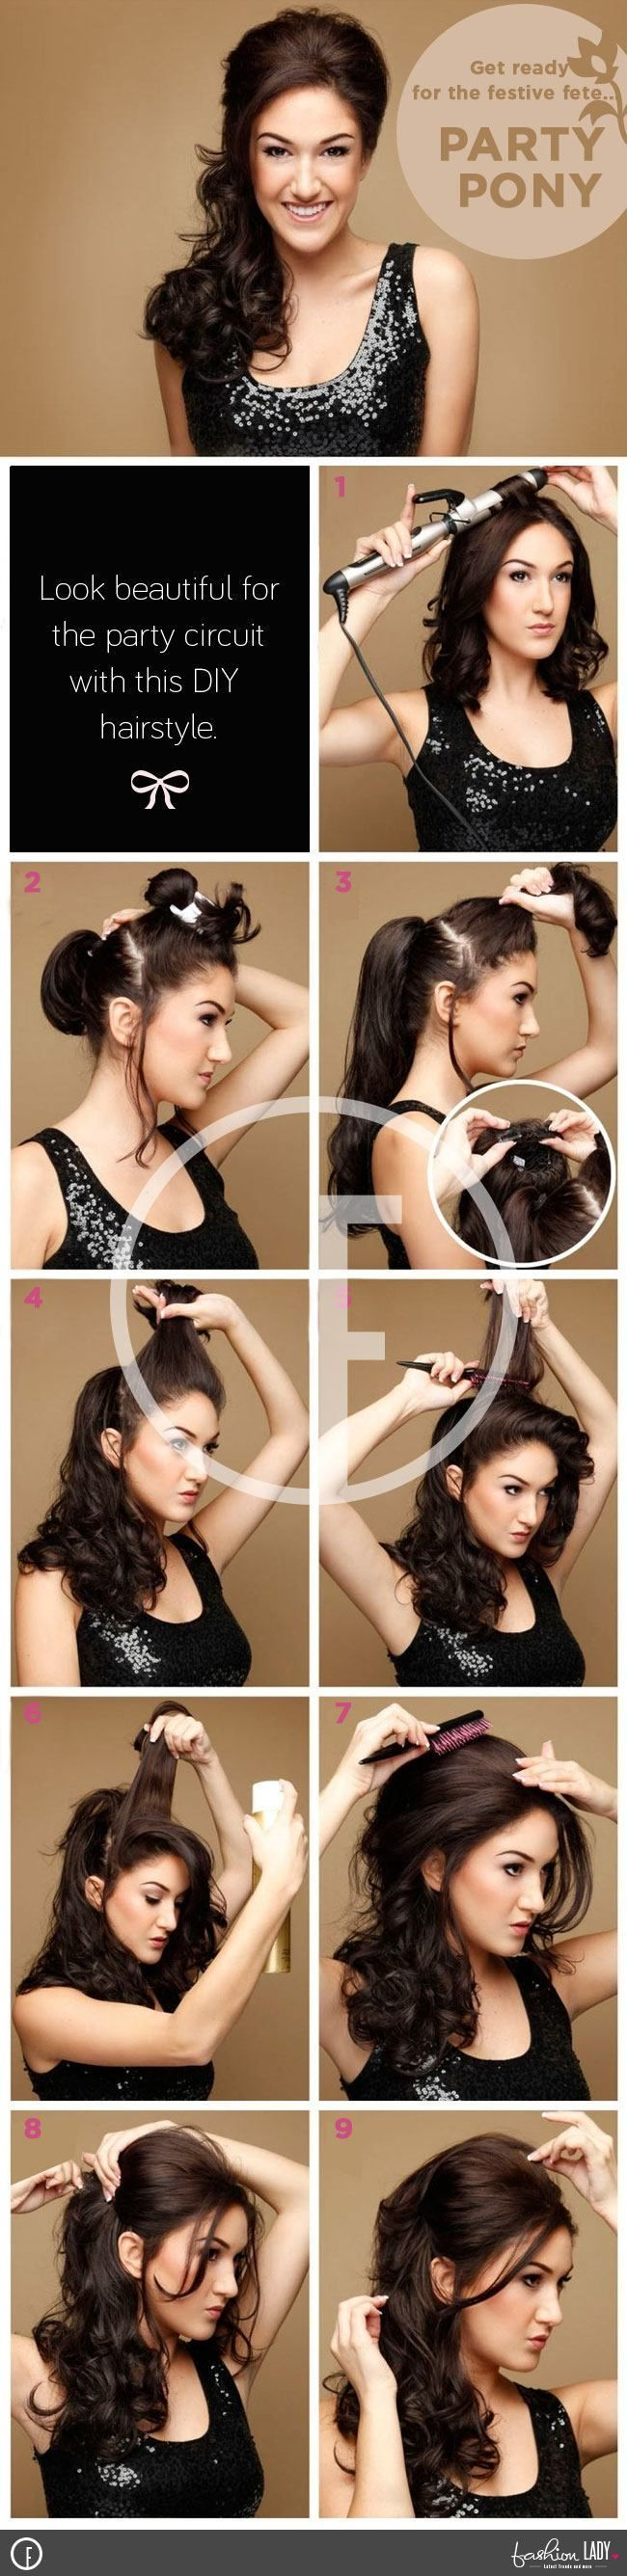 Party Pony – A new Stylish Ponytail Hairstyle for the Party-full Lady